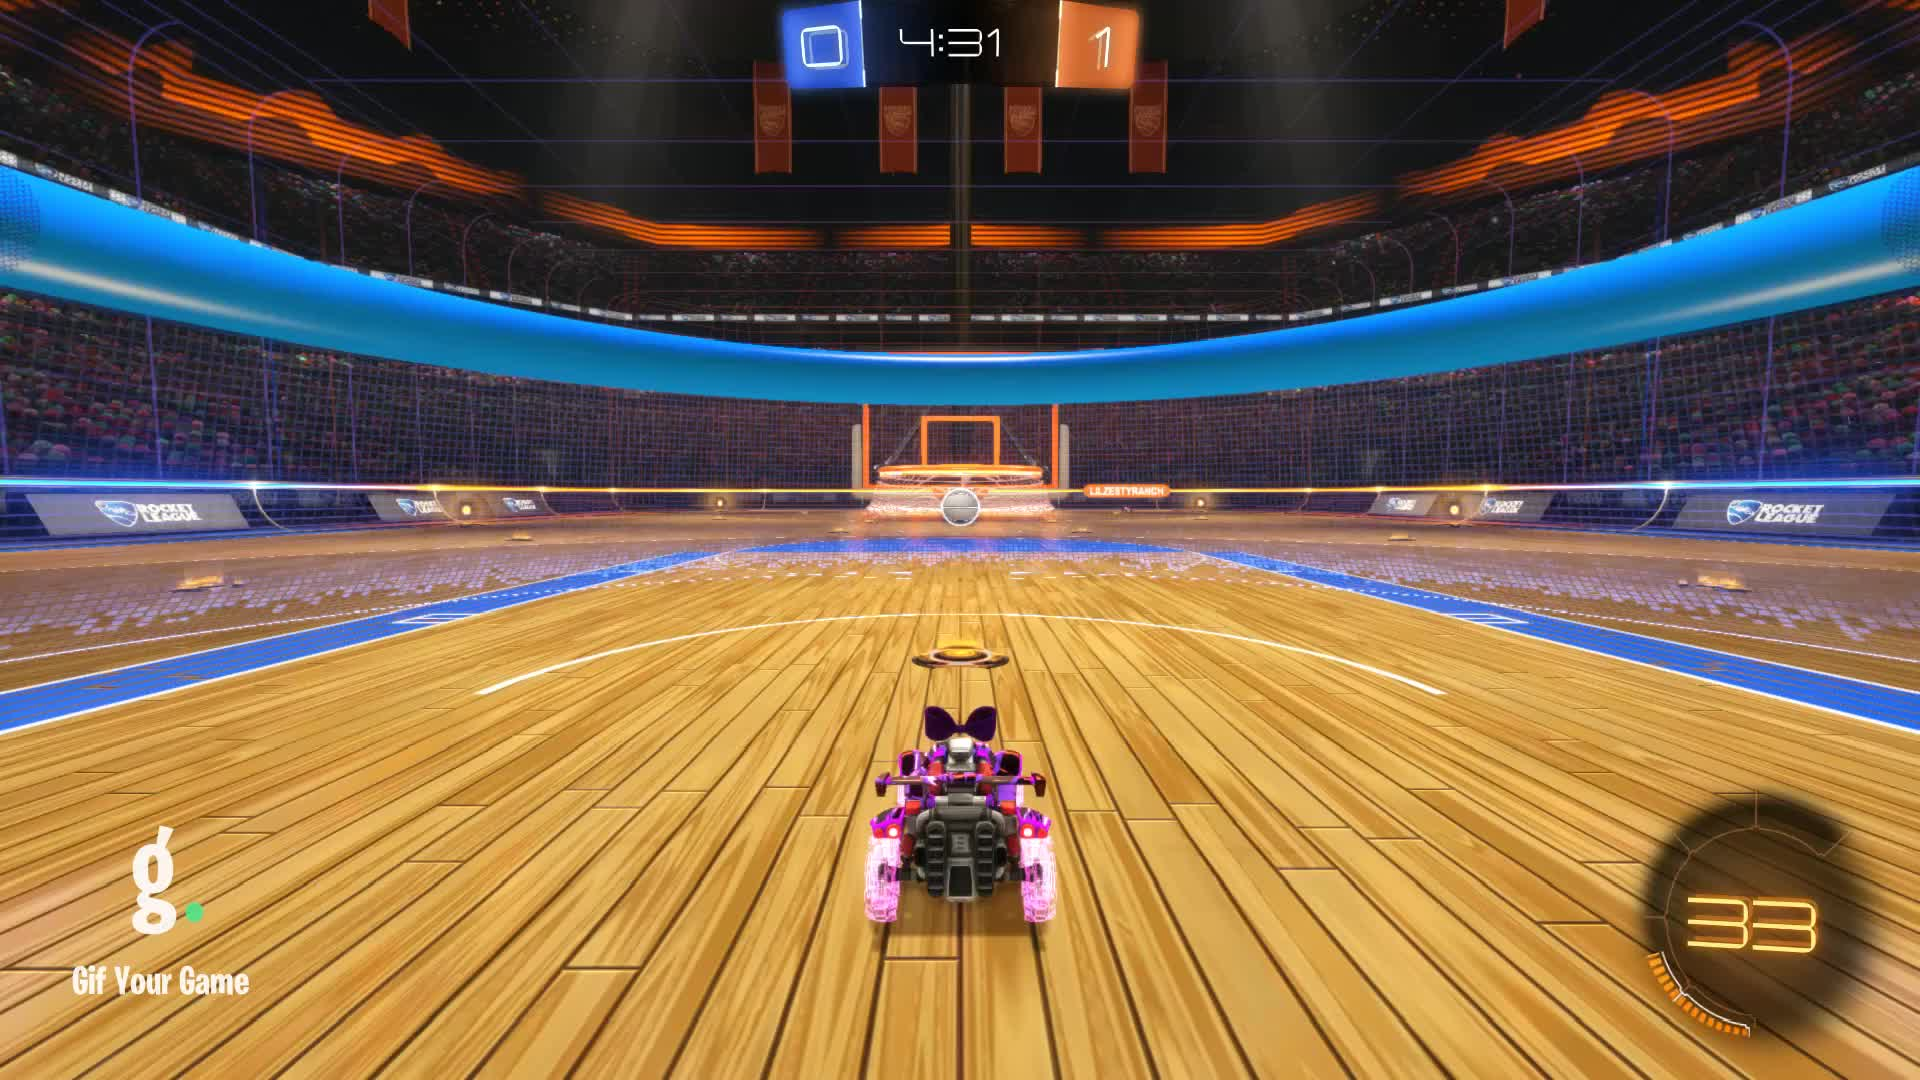 Gif Your Game, GifYourGame, Goal, Ovander, Rocket League, RocketLeague, Goal 2: Ovander GIFs